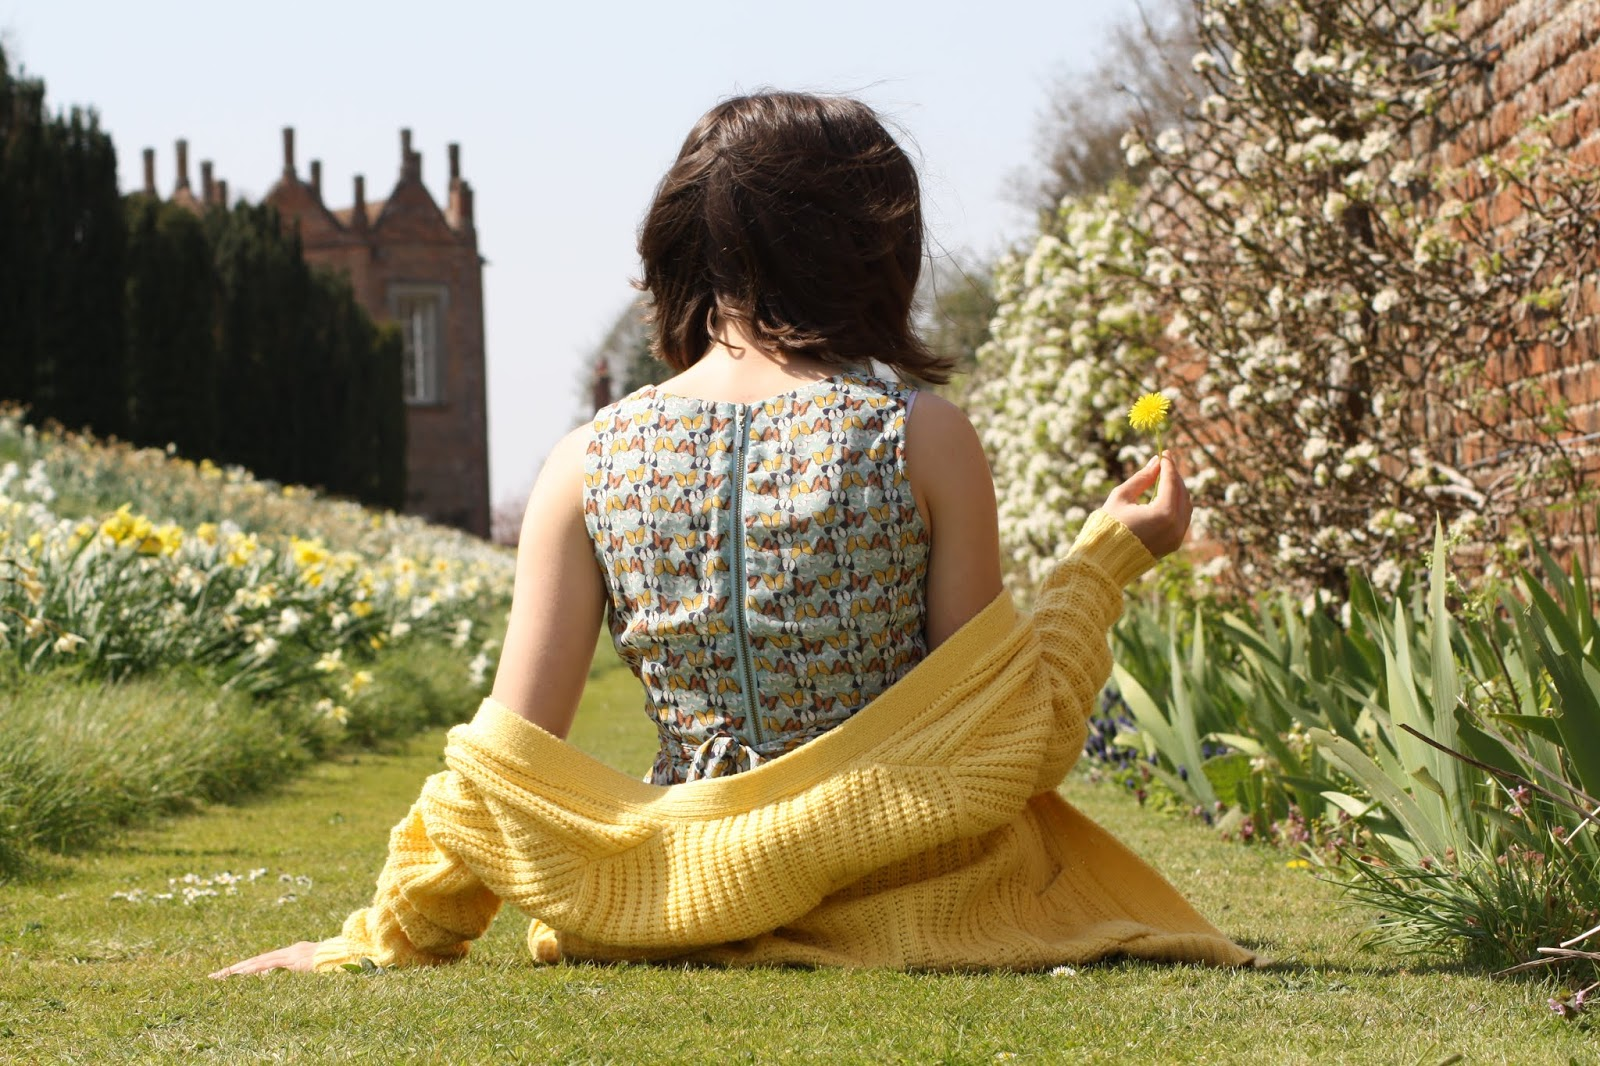 Abbey, wearing a butterfly print dress and yellow cardigan dropped off her shoulders, sits facing away from the camera amongst a row of daffodils, holding a dandelion